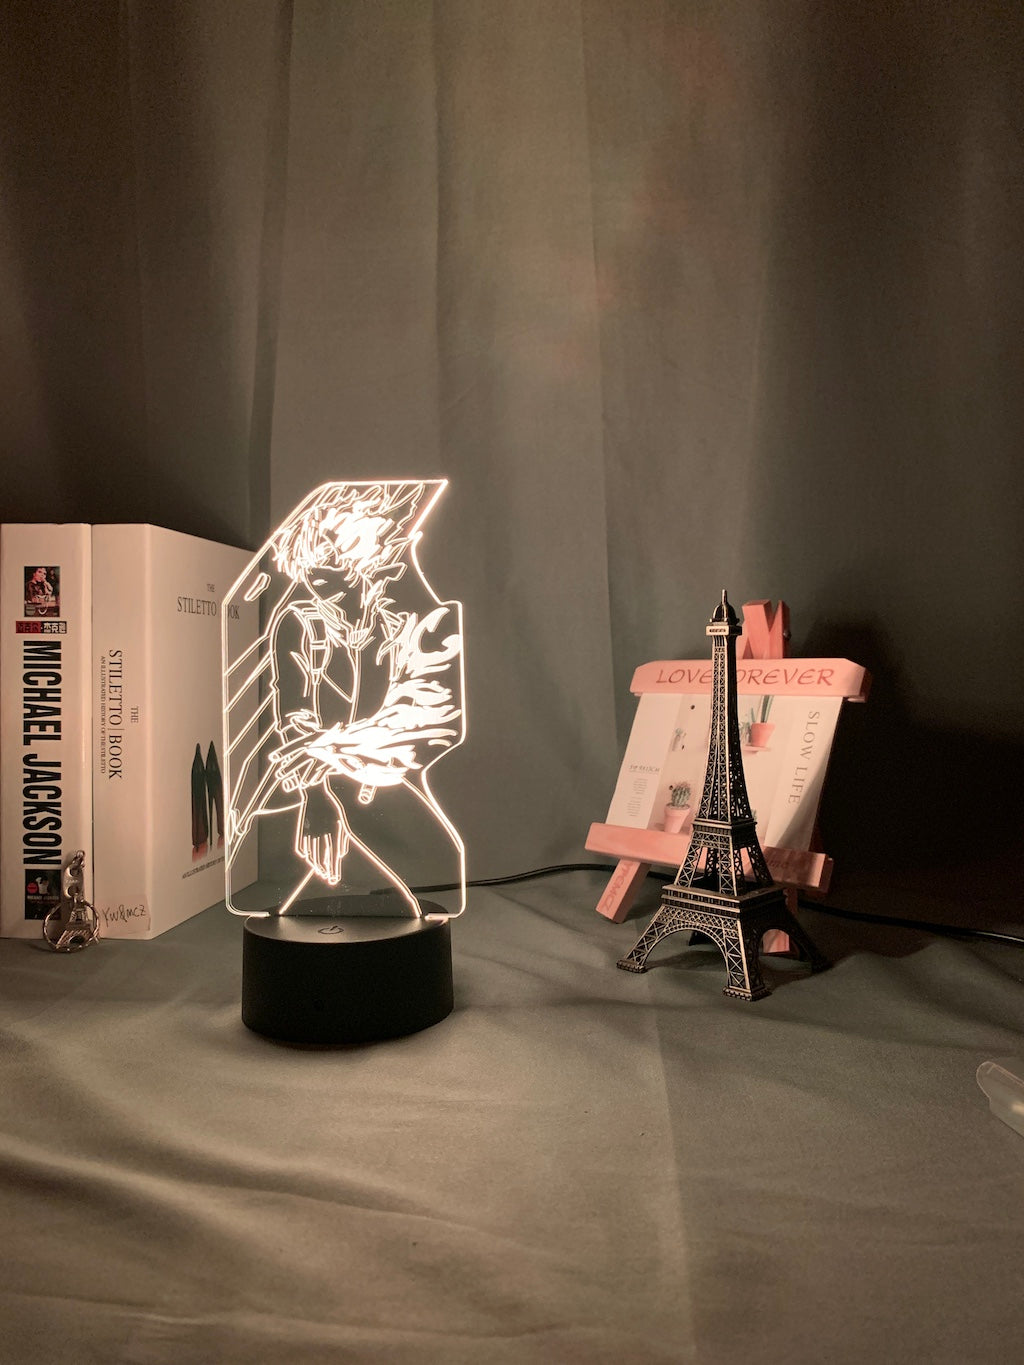 My Hero Academia Shoto Todoroki 3D Led Night Lamp